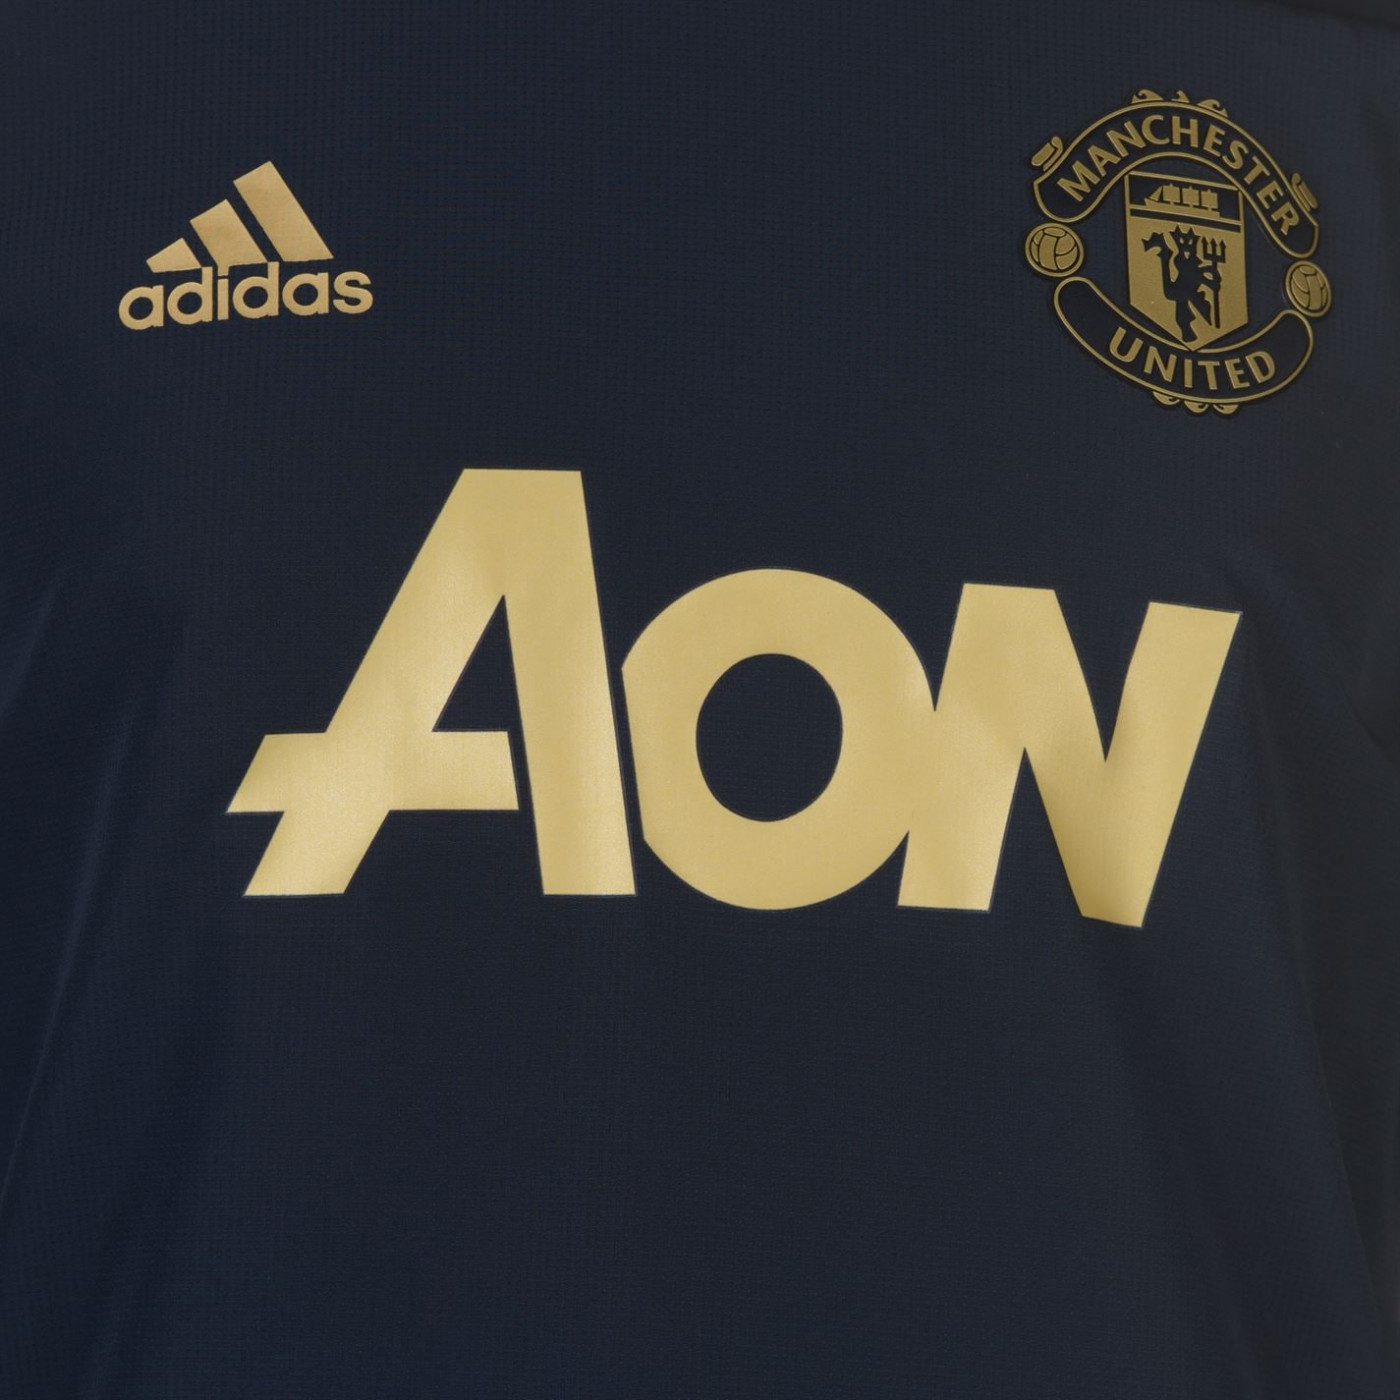 c8762aabe8 Mikina Adidas - Manchester United European Training Top 2018 2019 Mens